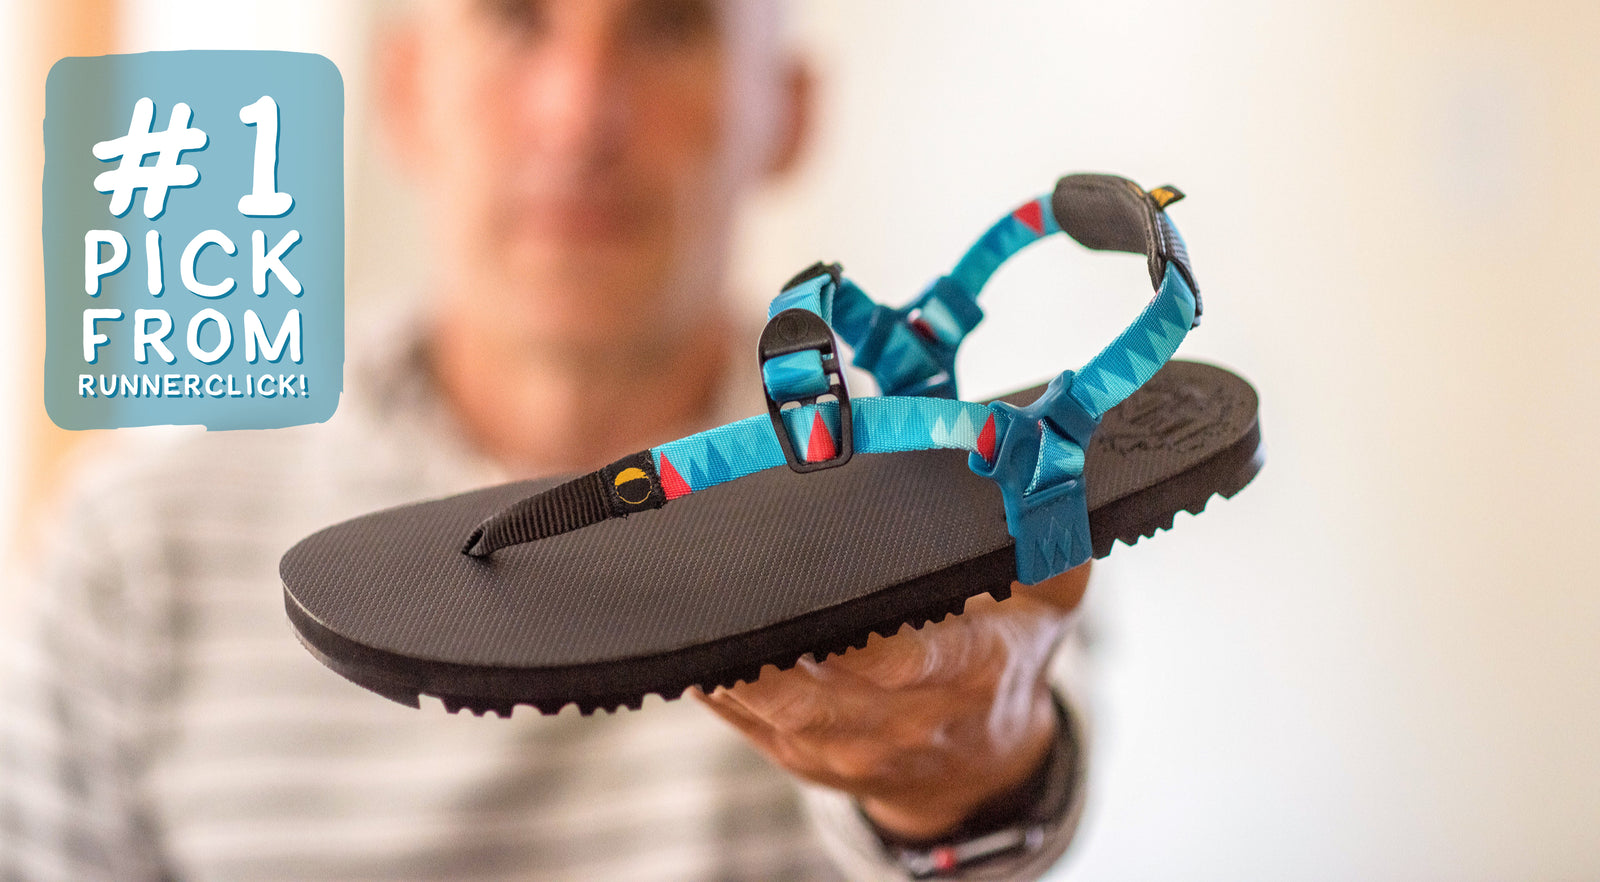 f5408a9f8ea5 Award Winning Running and Outdoor Adventure Sandals - Made in USA